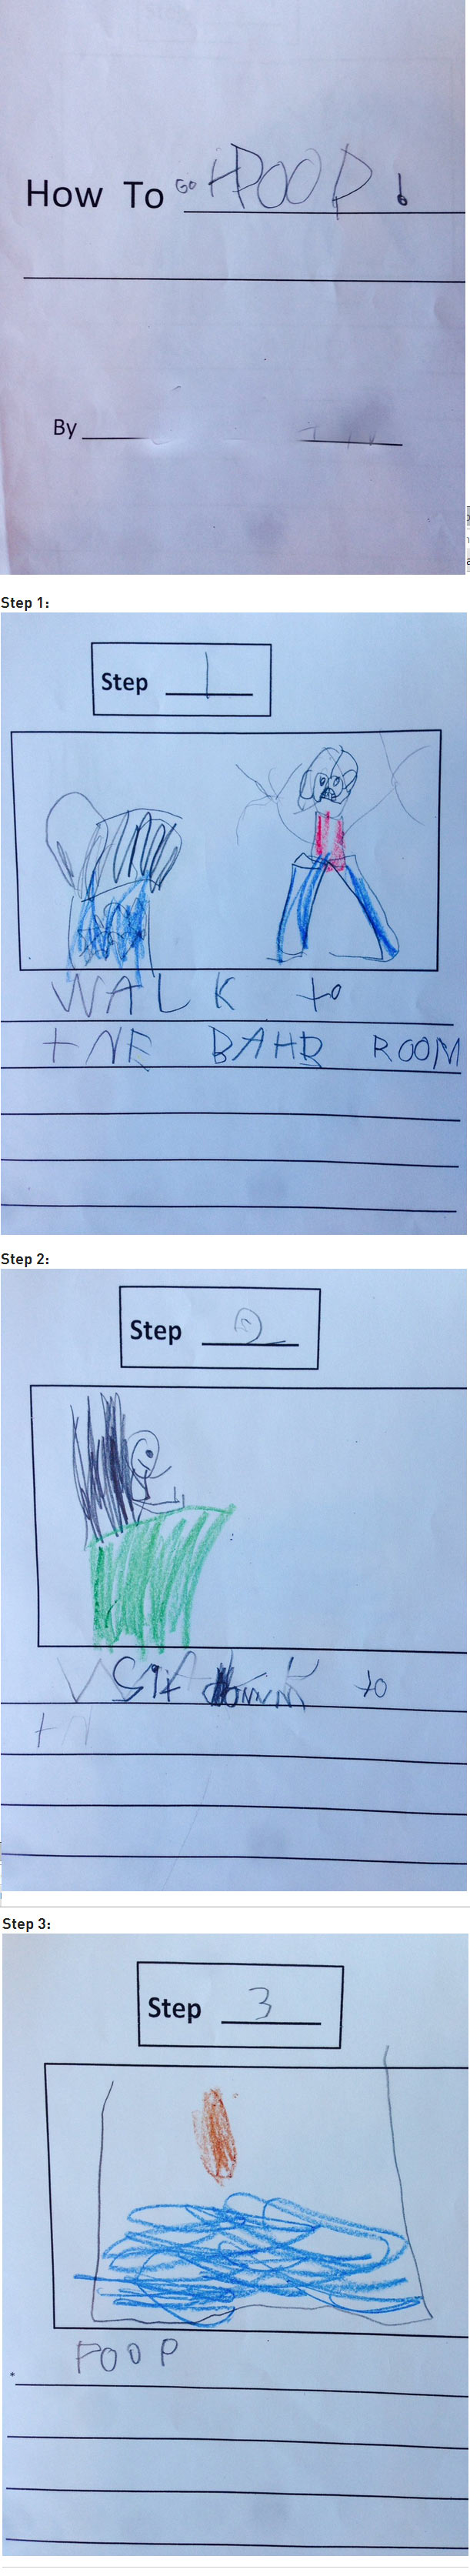 How To Poop, by anonymous kindergartener.